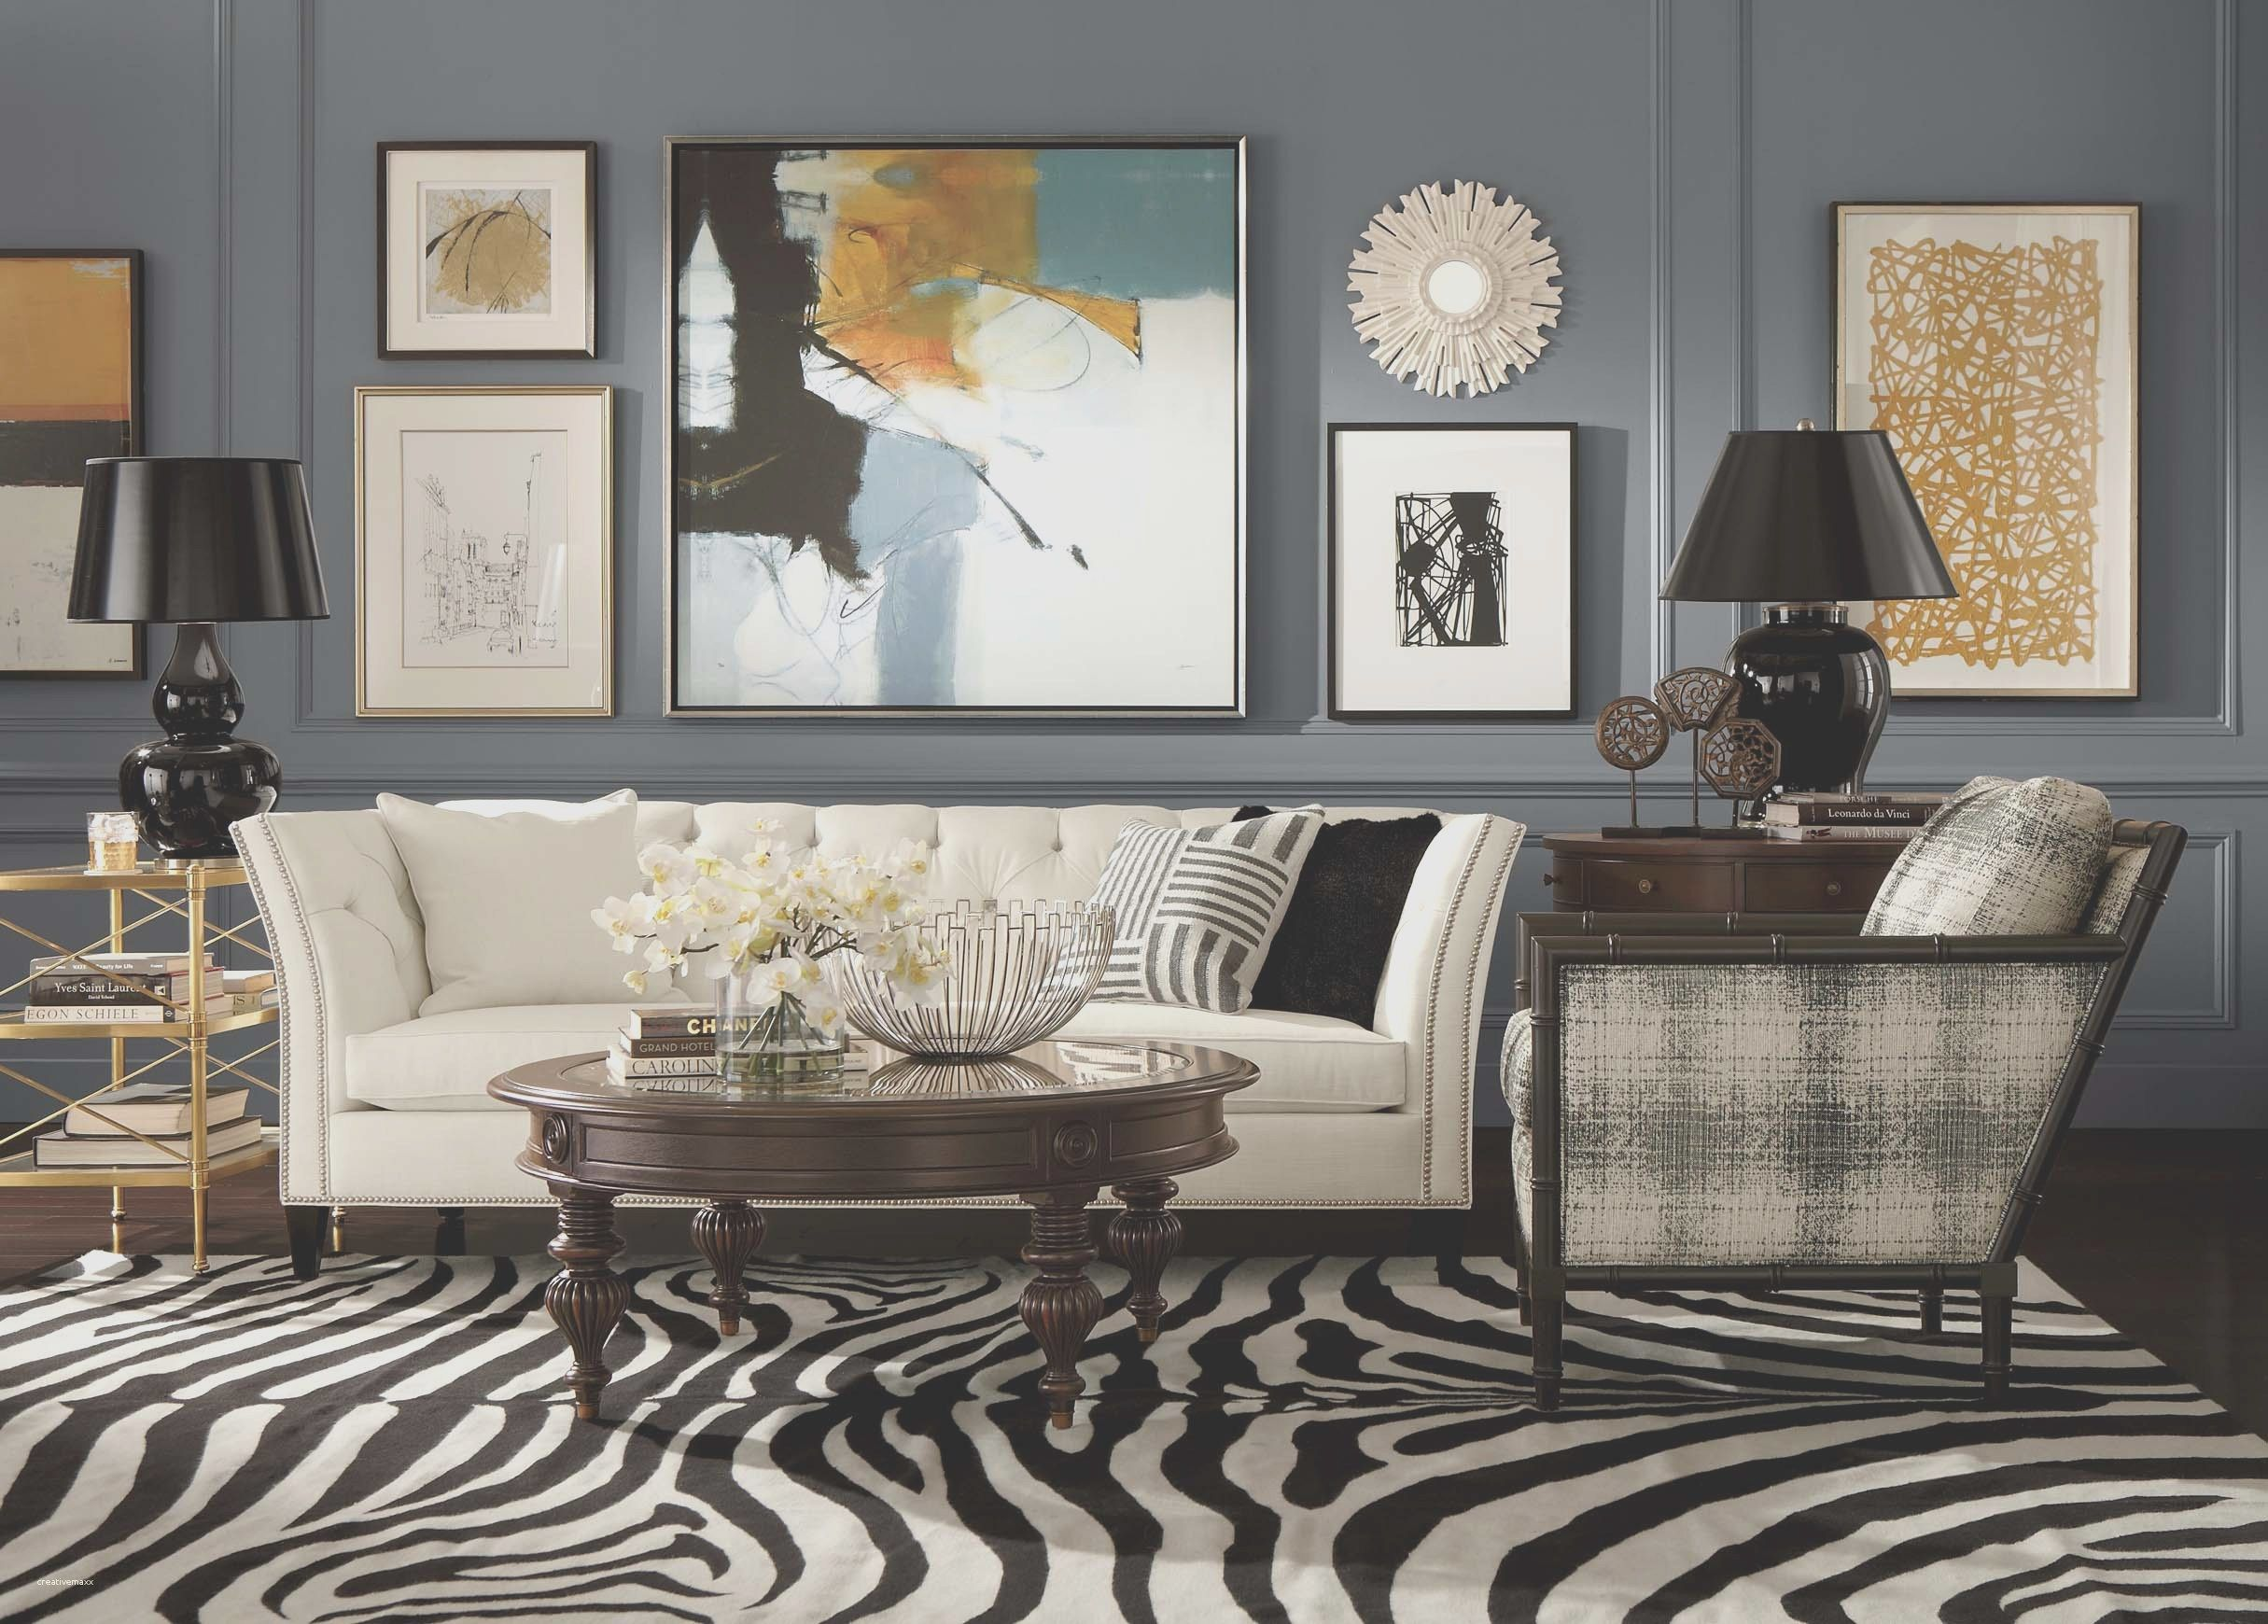 Luxury Zebra Print Decor Ideas In 23 Photos With Images Living